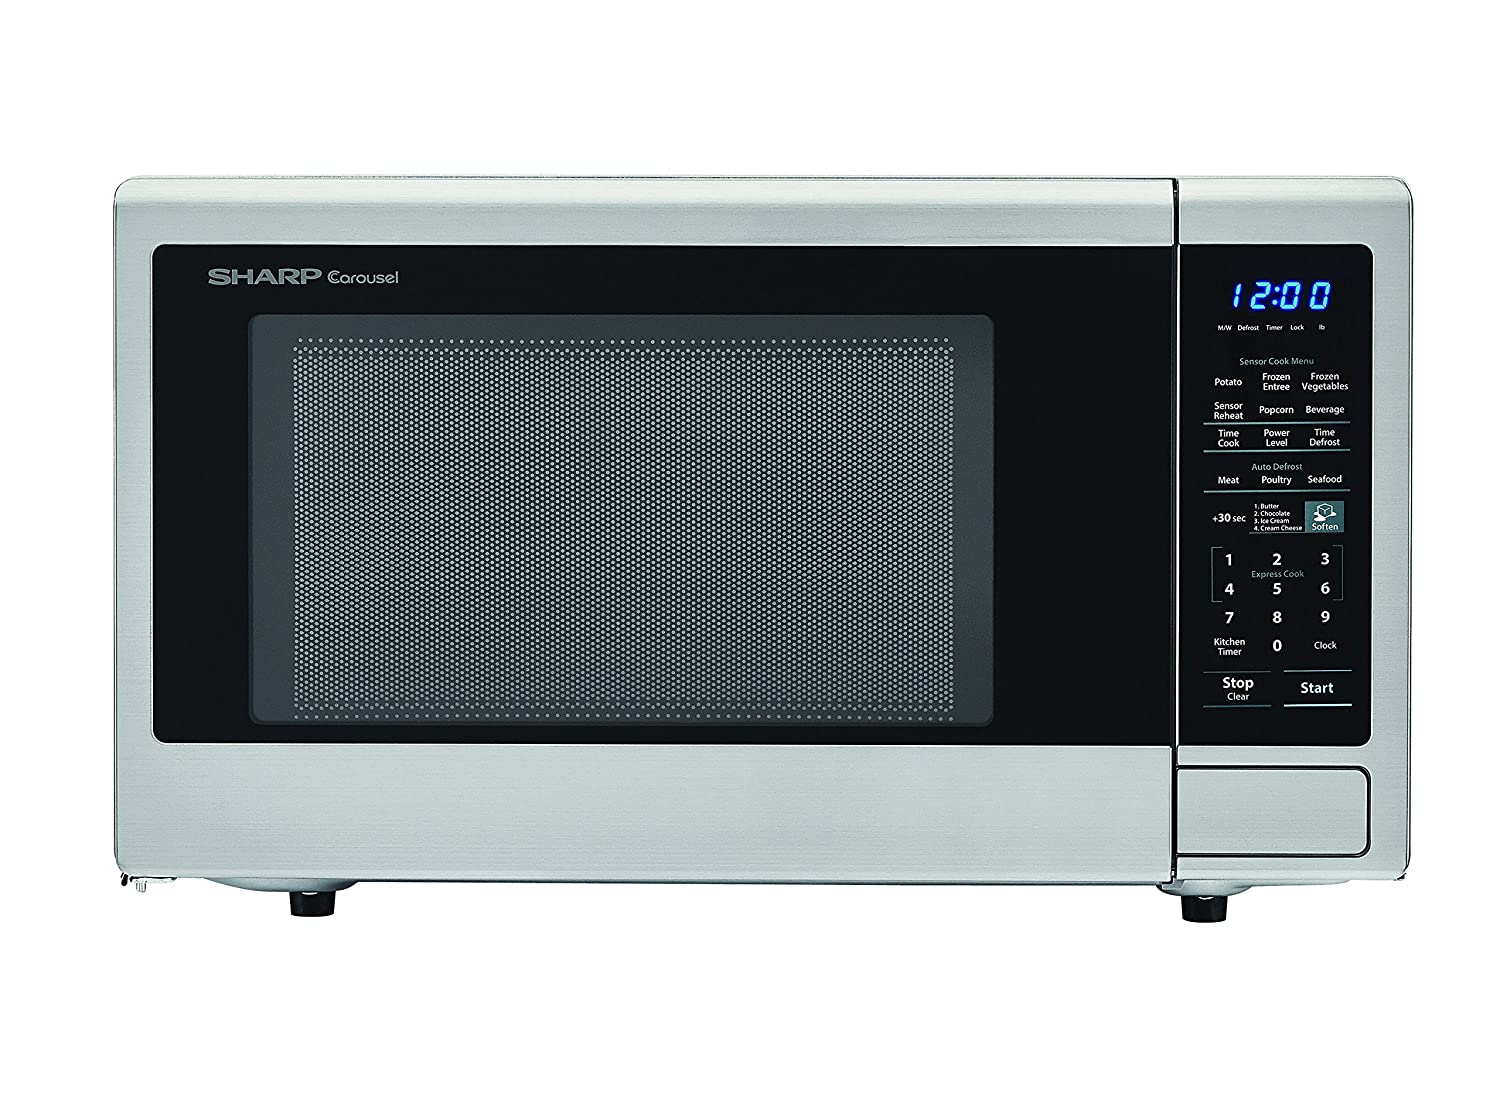 Sharp Microwaves ZSMC1442CS Sharp 1,000W Countertop Microwave Oven, 1.4 Cubic Foot, Stainless Steel